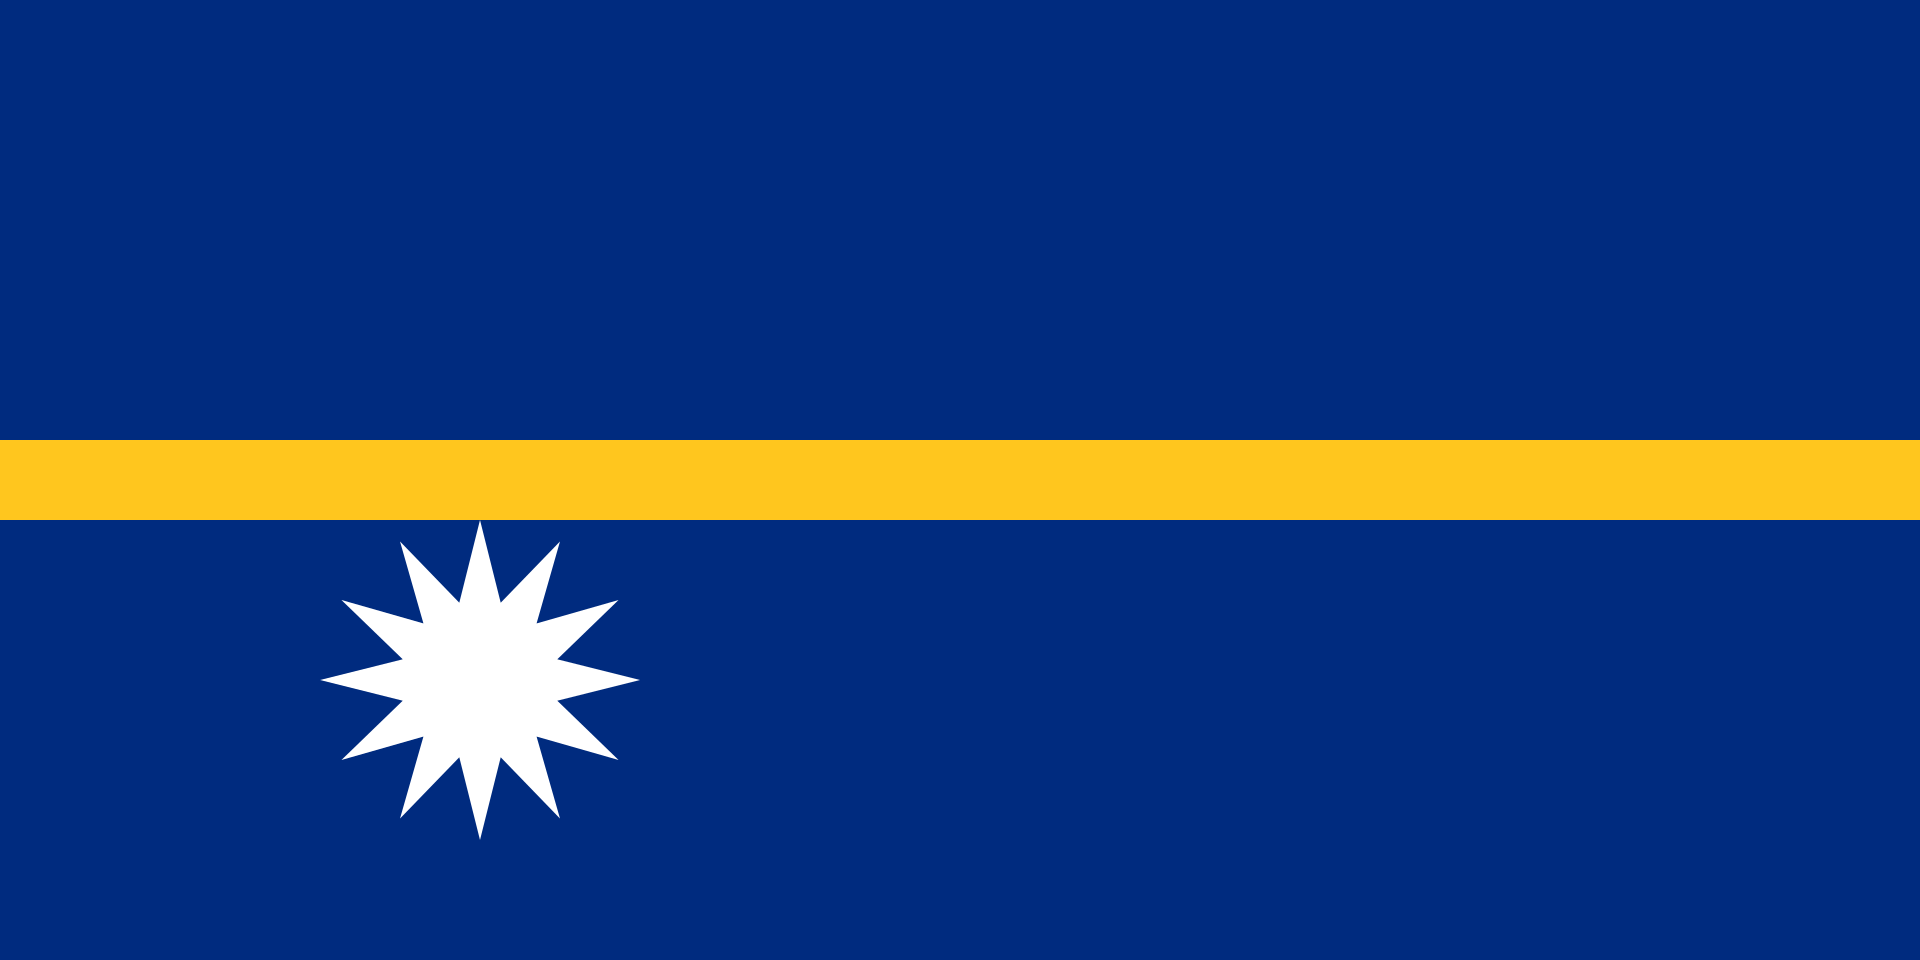 The flag of Nauru.